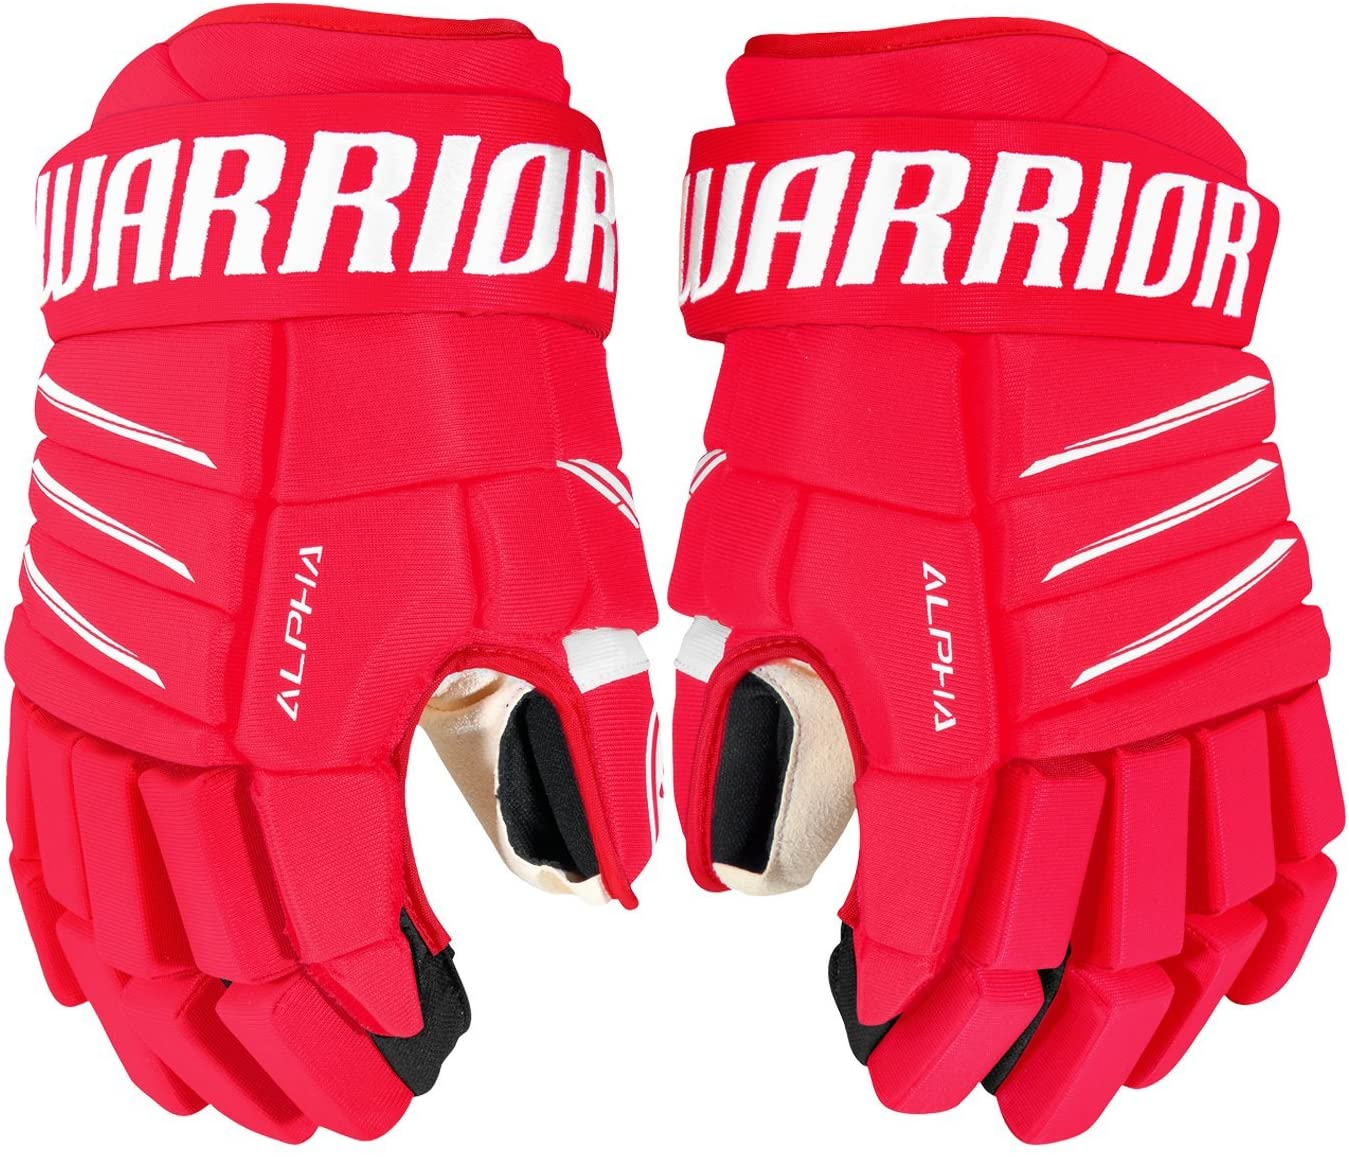 Warrior QX4